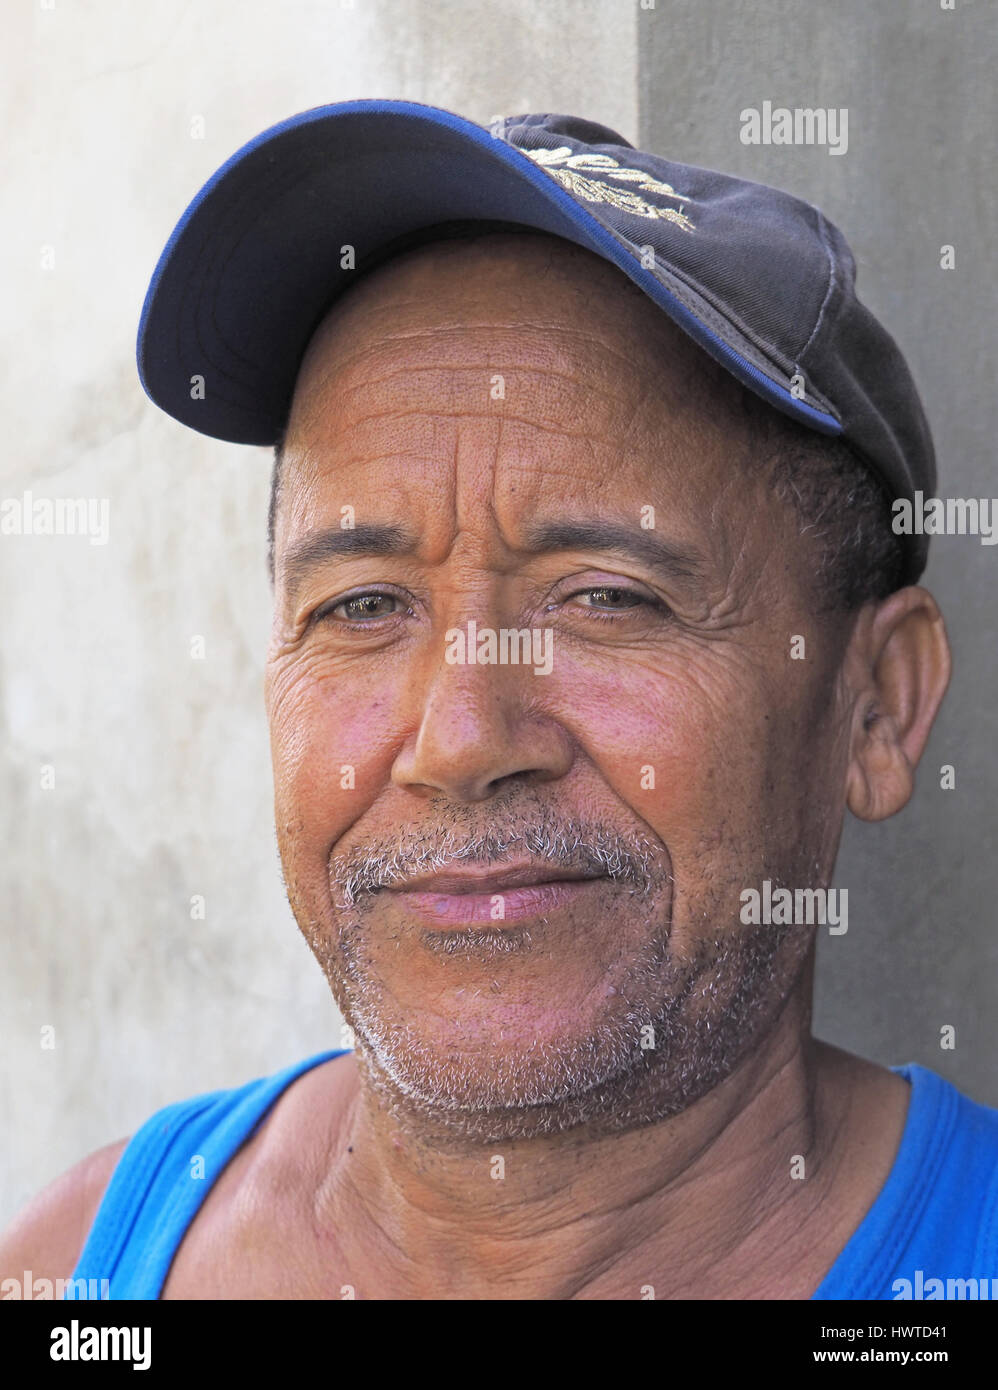 Cacao tree nursery grower in Puerto Plata, Dominican Republic. - Stock Image